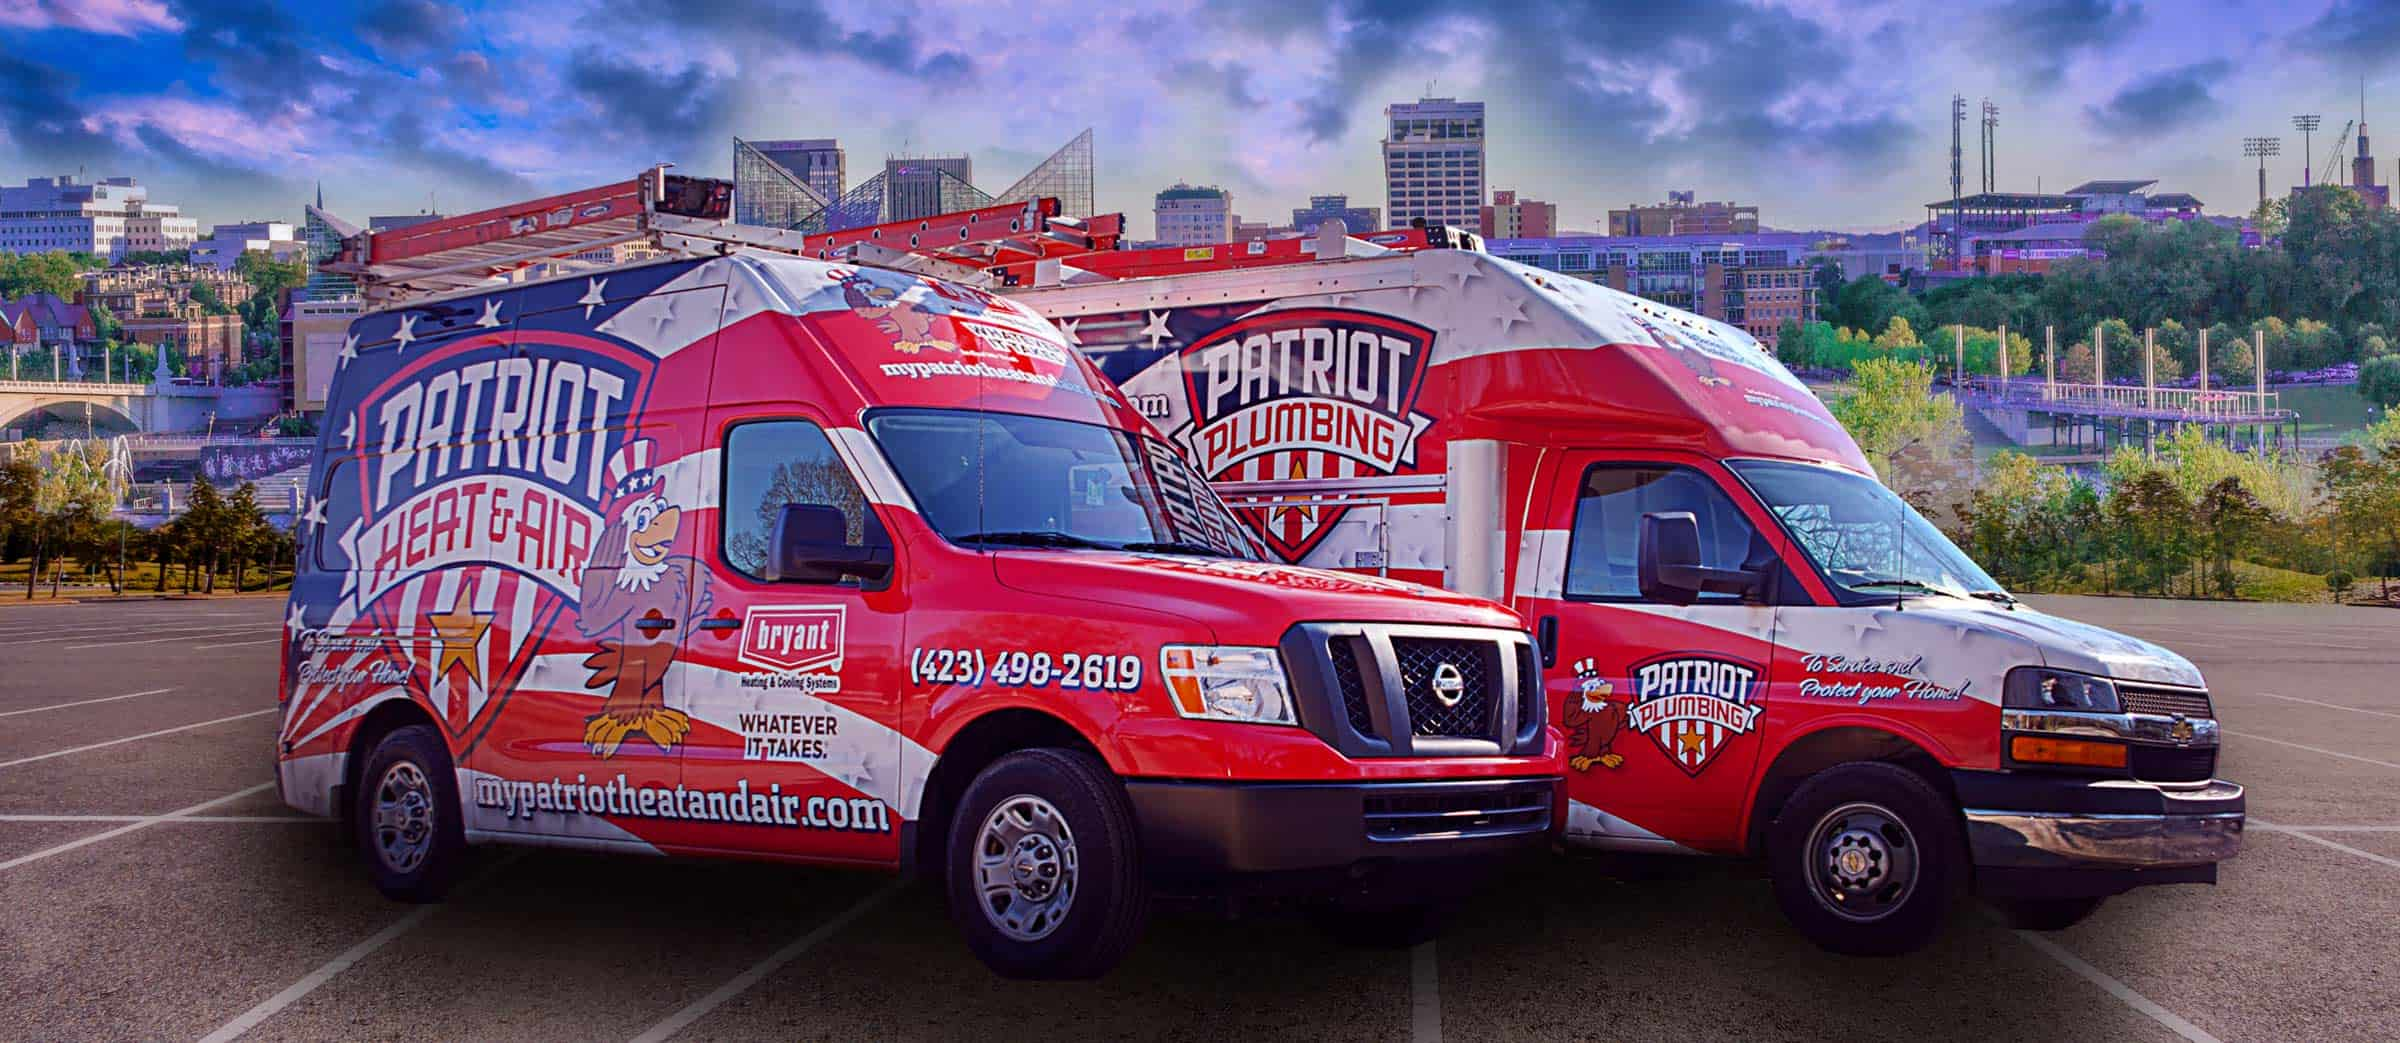 Plumbing Services Plumber in Chattanooga, TN | Patriot Plumbing | Plumber in Cleveland, TN Newsletter Sign Up